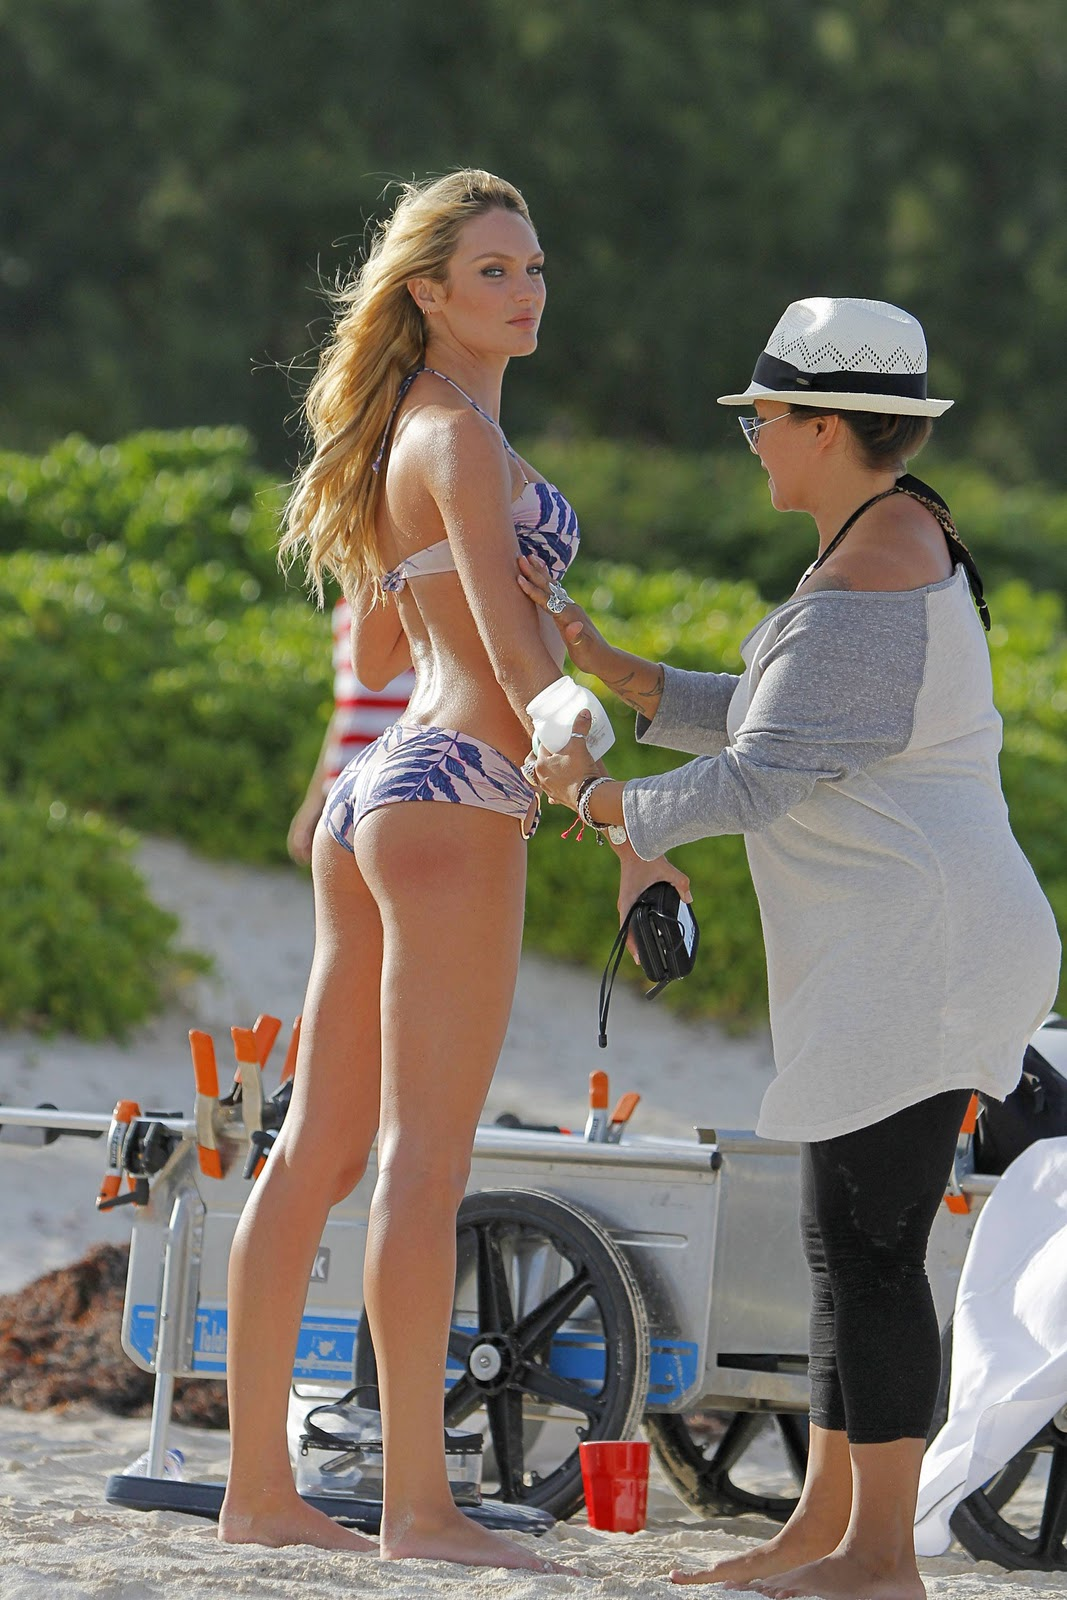 Models Inspiration Candice Swanepoel In StBarts 2012 HQ